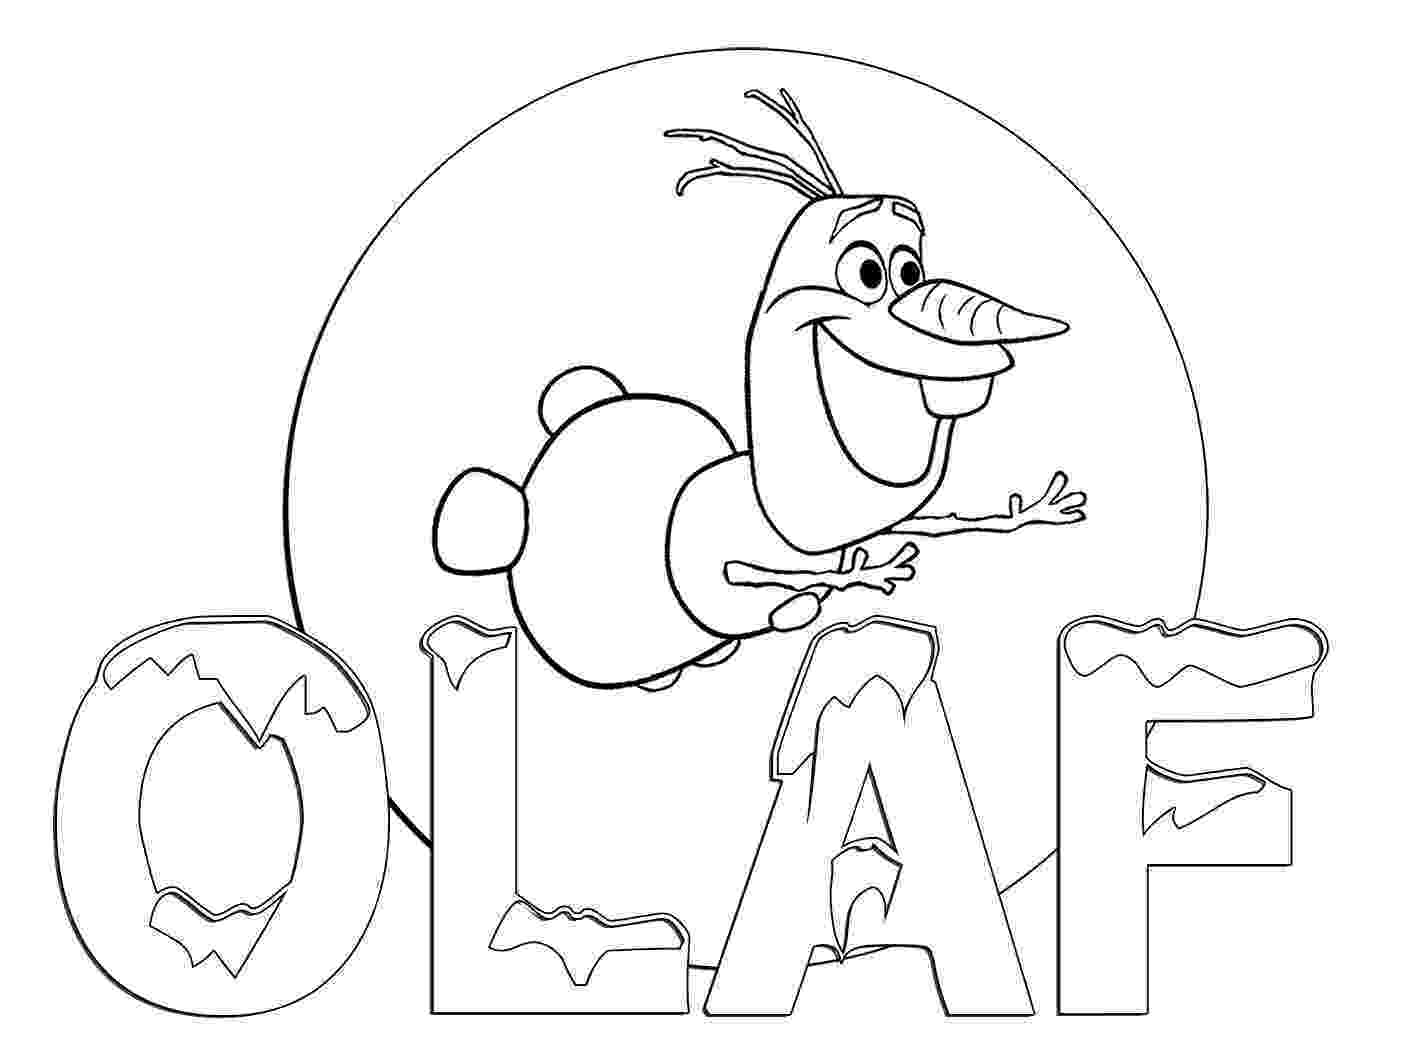 olaf pictures to print frozens olaf coloring pages best coloring pages for kids pictures to print olaf 1 1